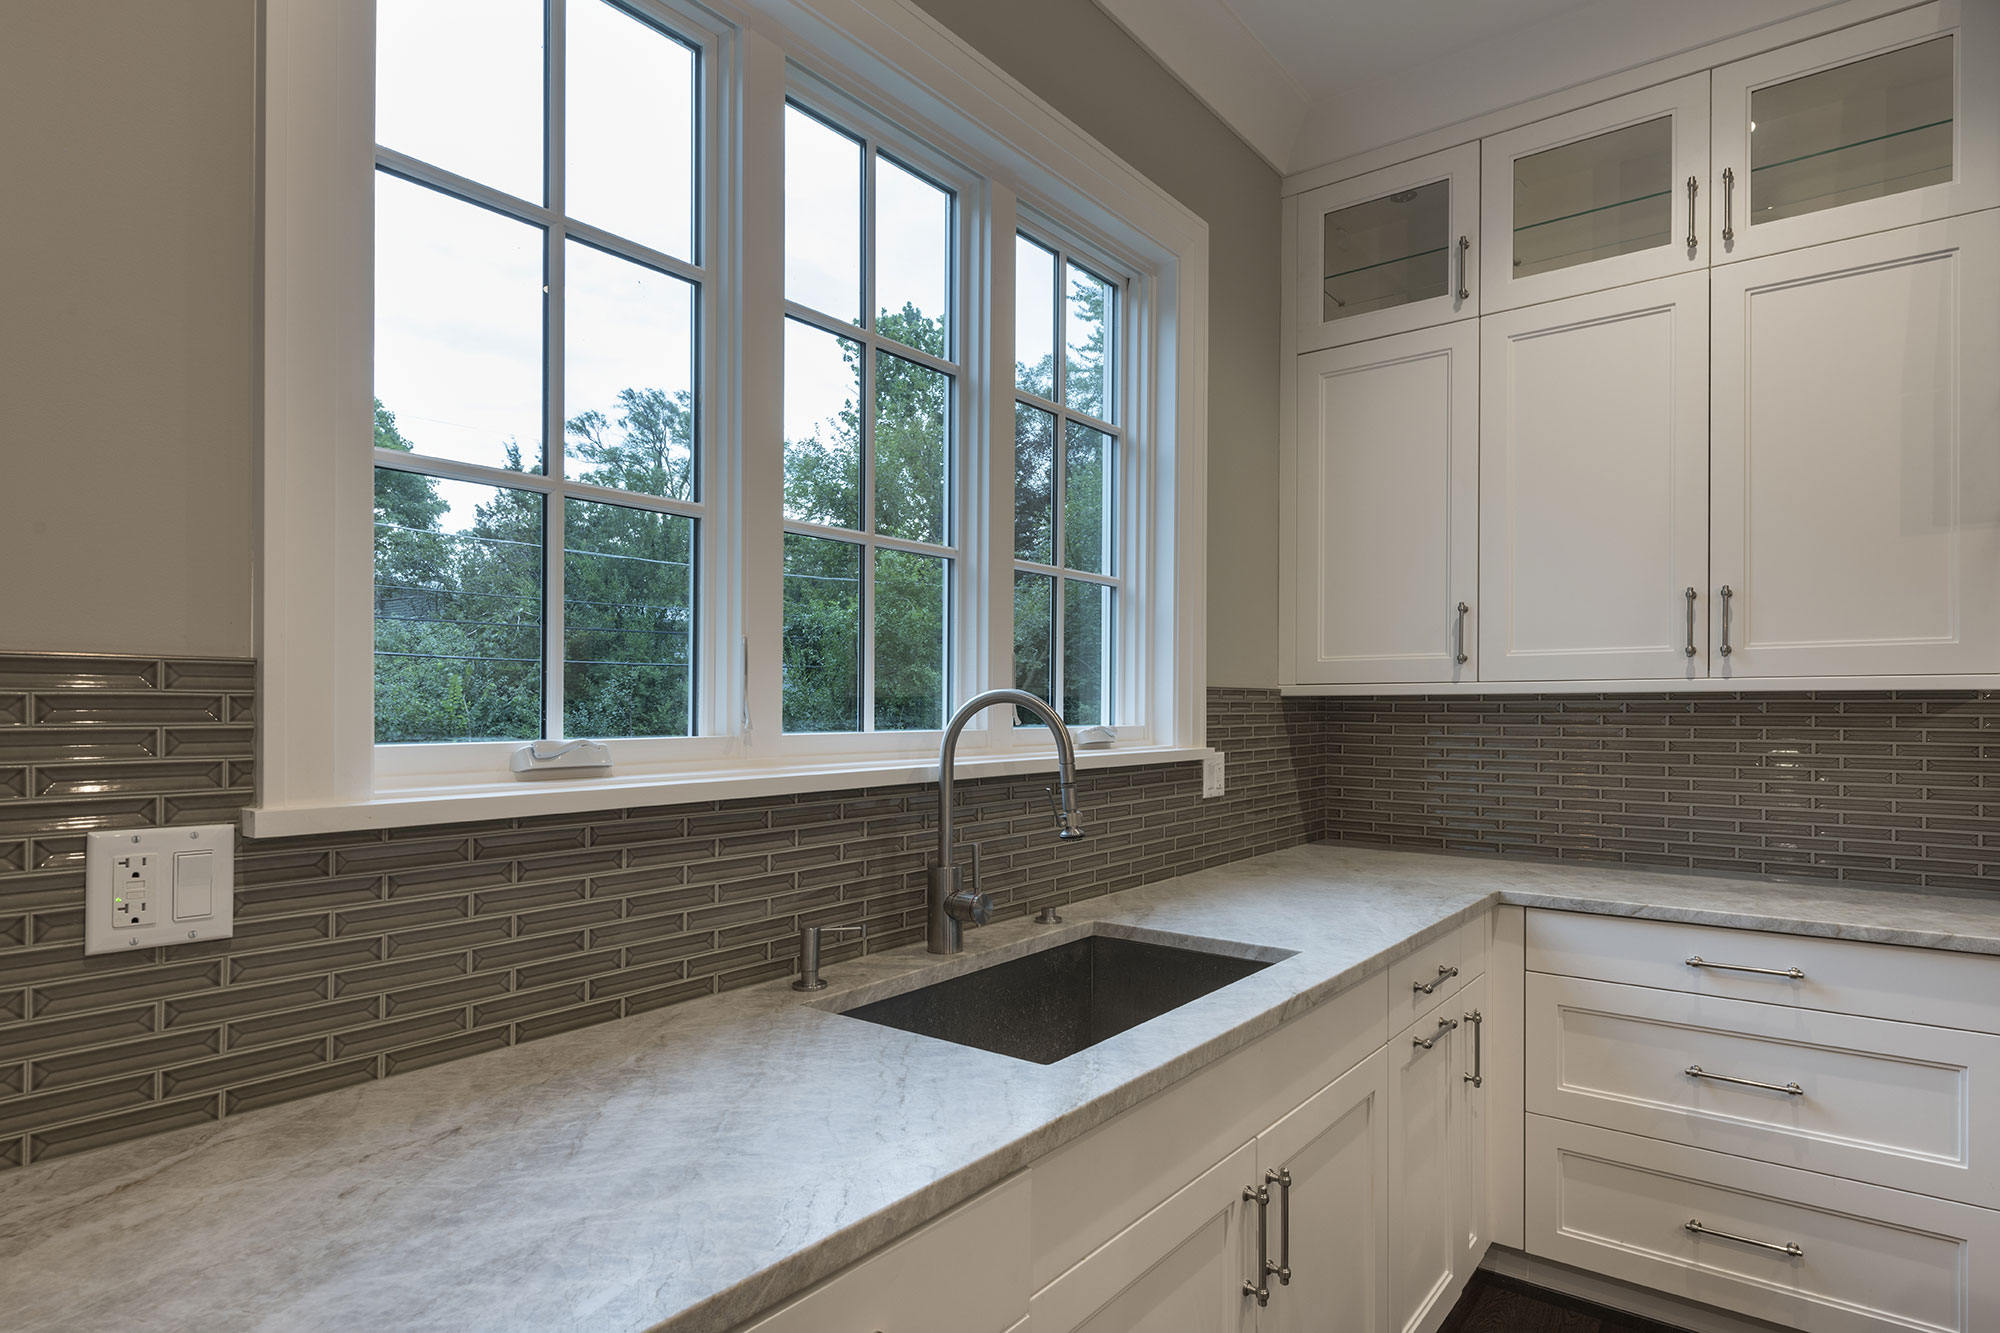 Kitchen Cabinets, Fauset, Window, Transitional Style